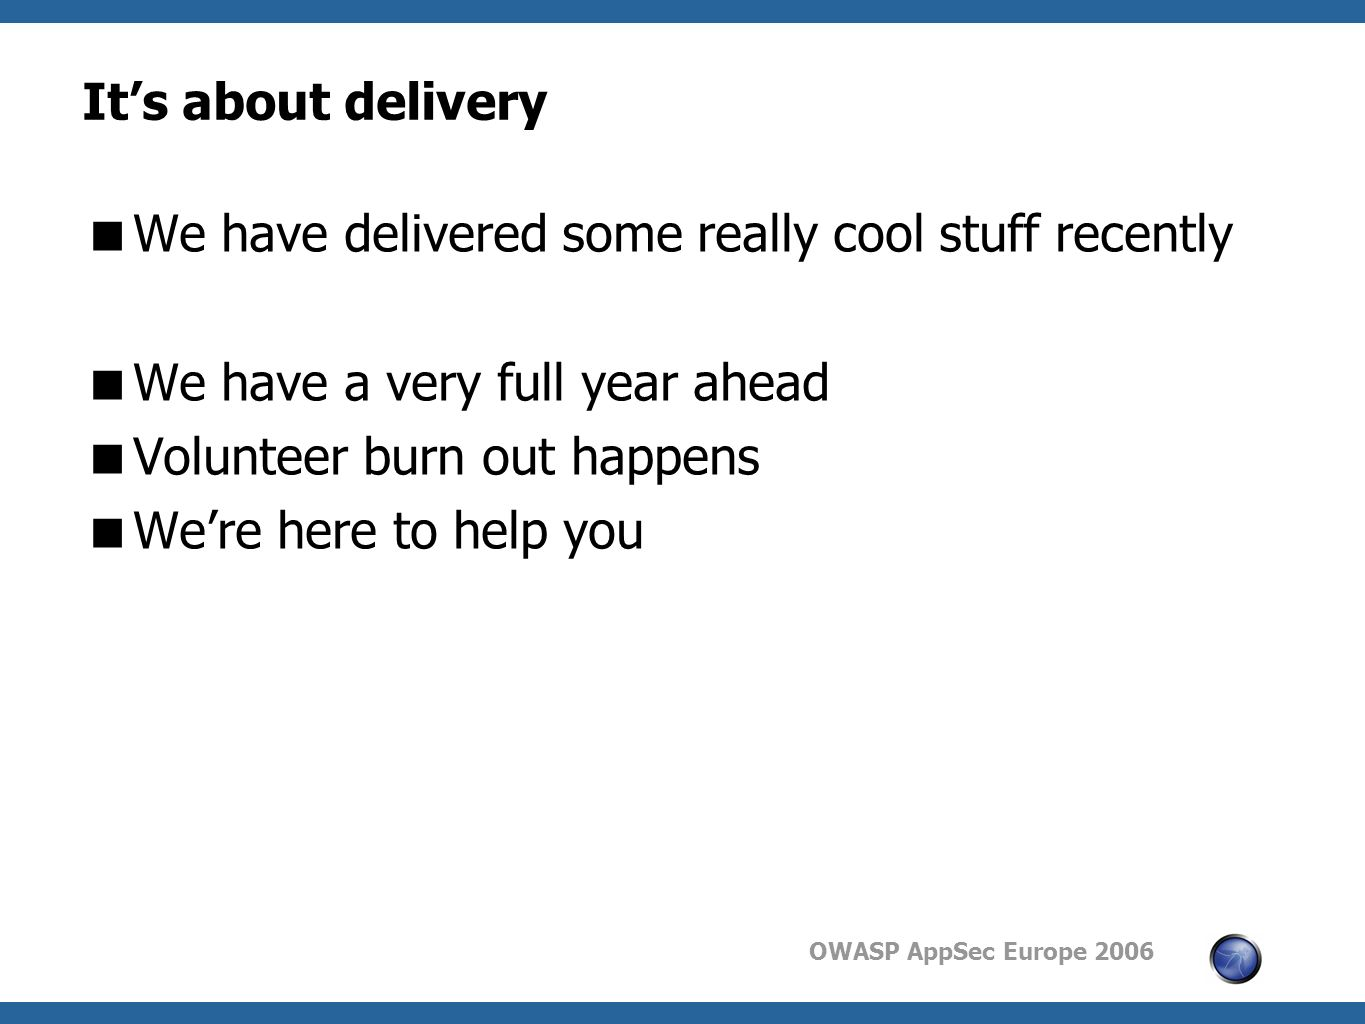 OWASP AppSec Europe 2006 It's about delivery  We have delivered some really cool stuff recently  We have a very full year ahead  Volunteer burn out happens  We're here to help you